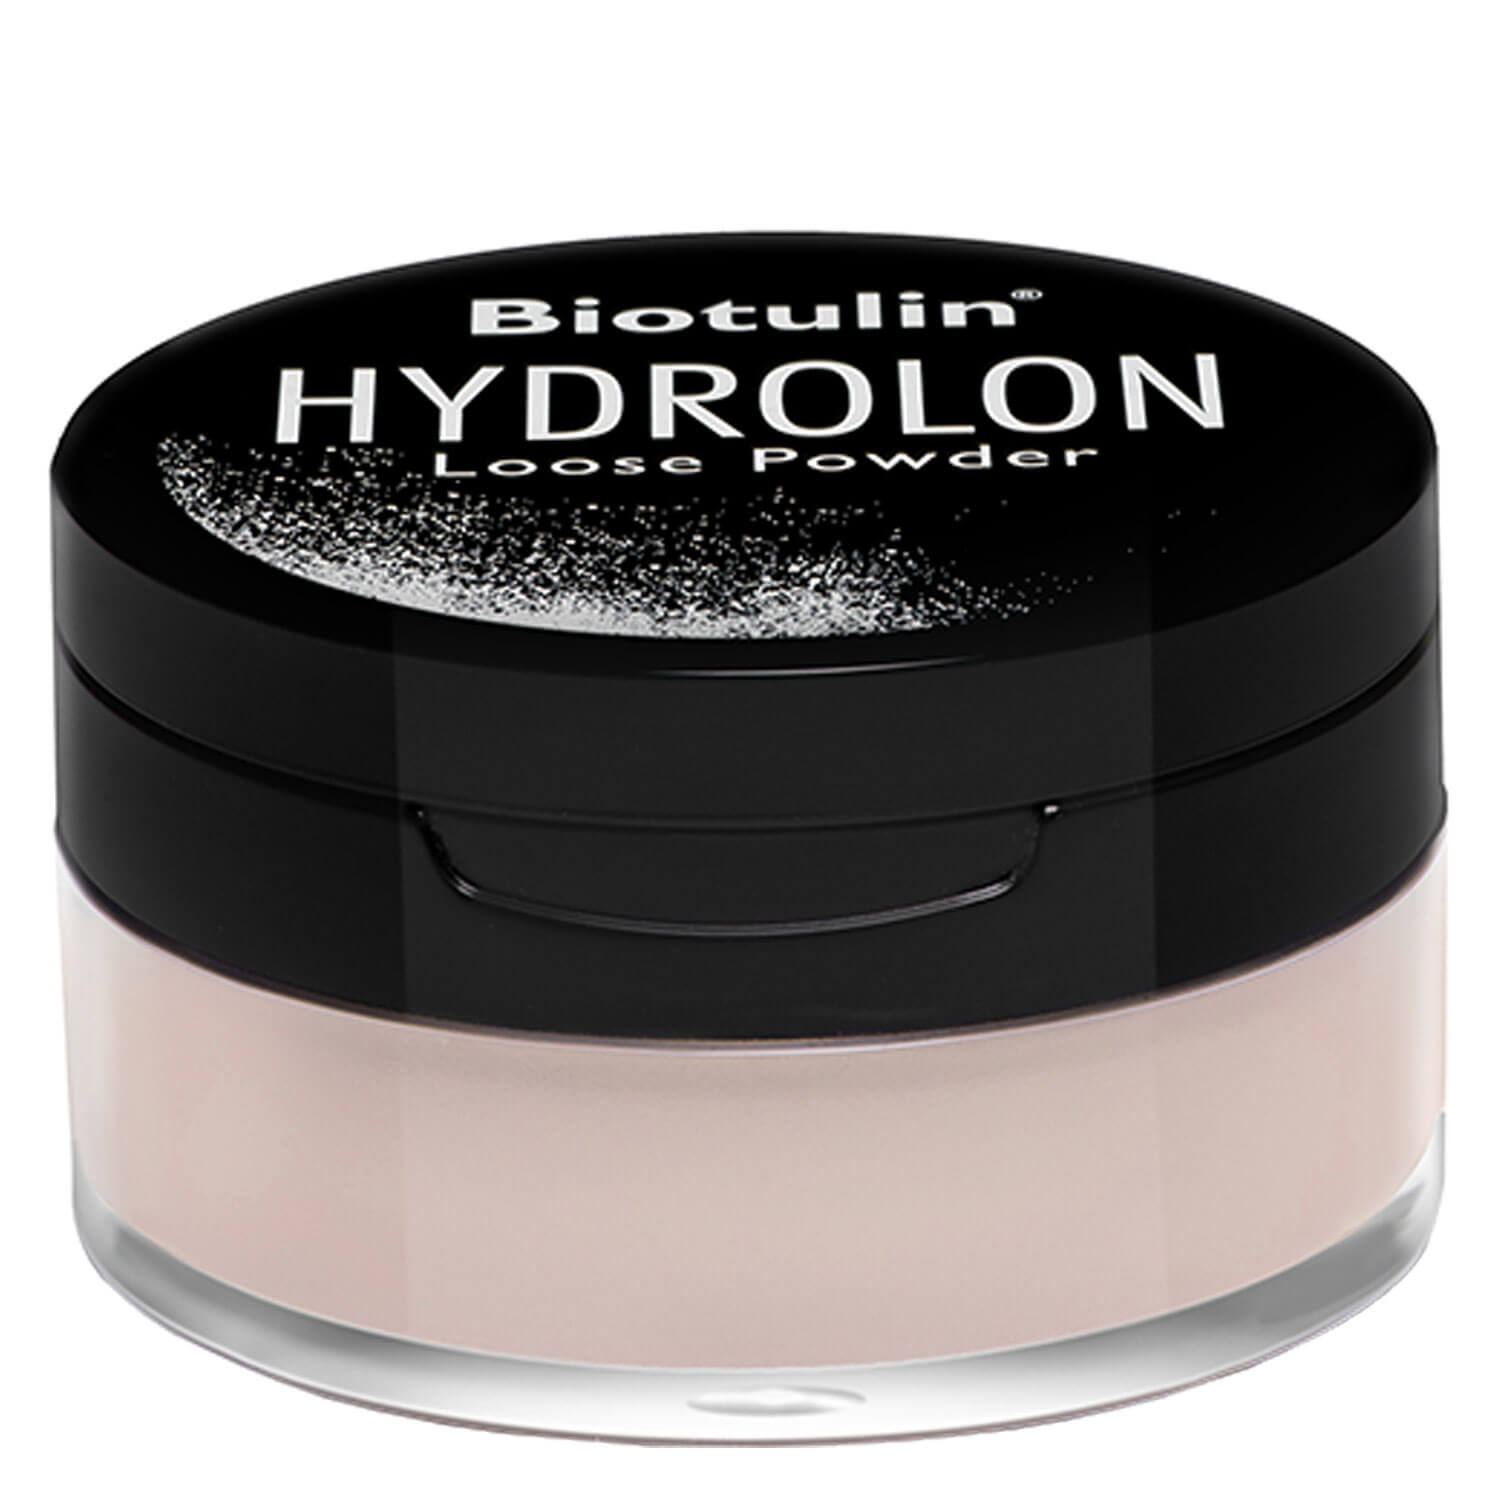 Biotulin - Hydrolon Loose Powder